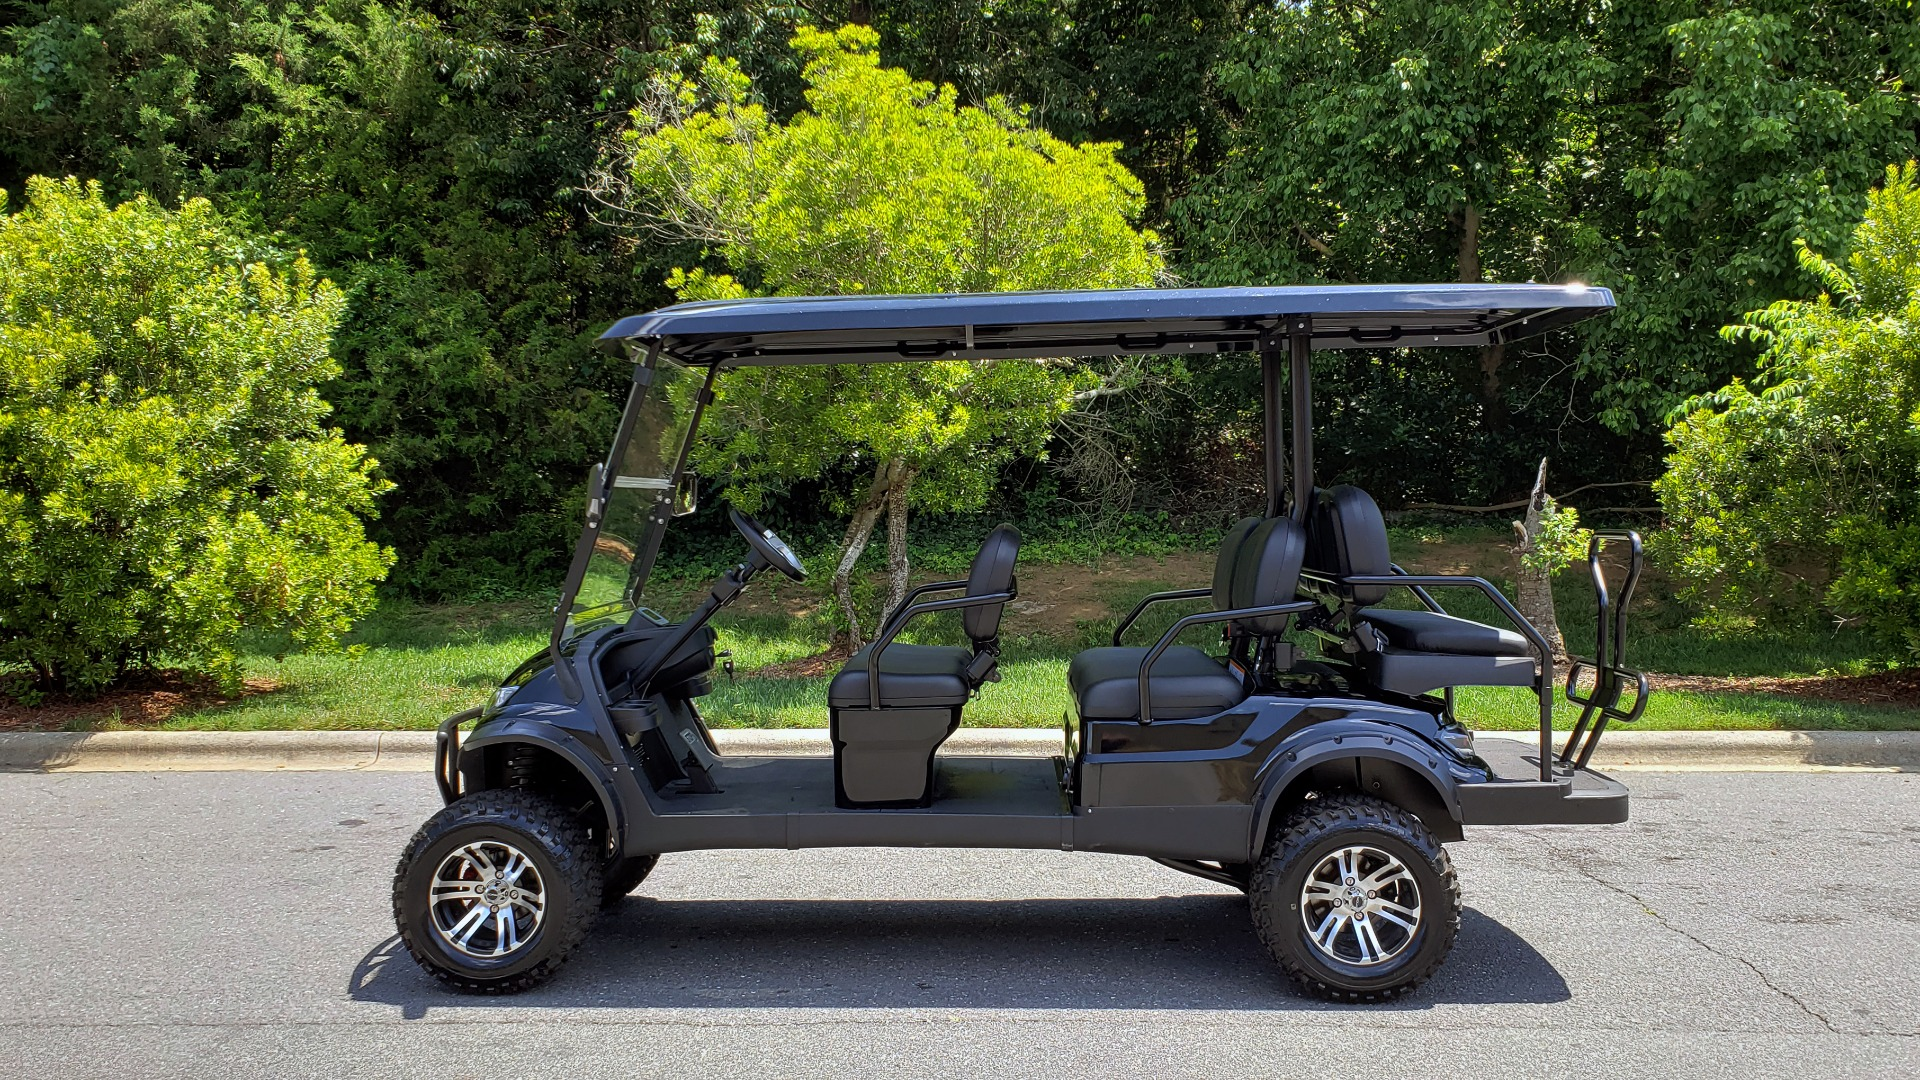 Used 2019 ICON ELECTRIC CAR 3-ROW / 6-PASSENGER / LIFTED for sale $10,900 at Formula Imports in Charlotte NC 28227 2